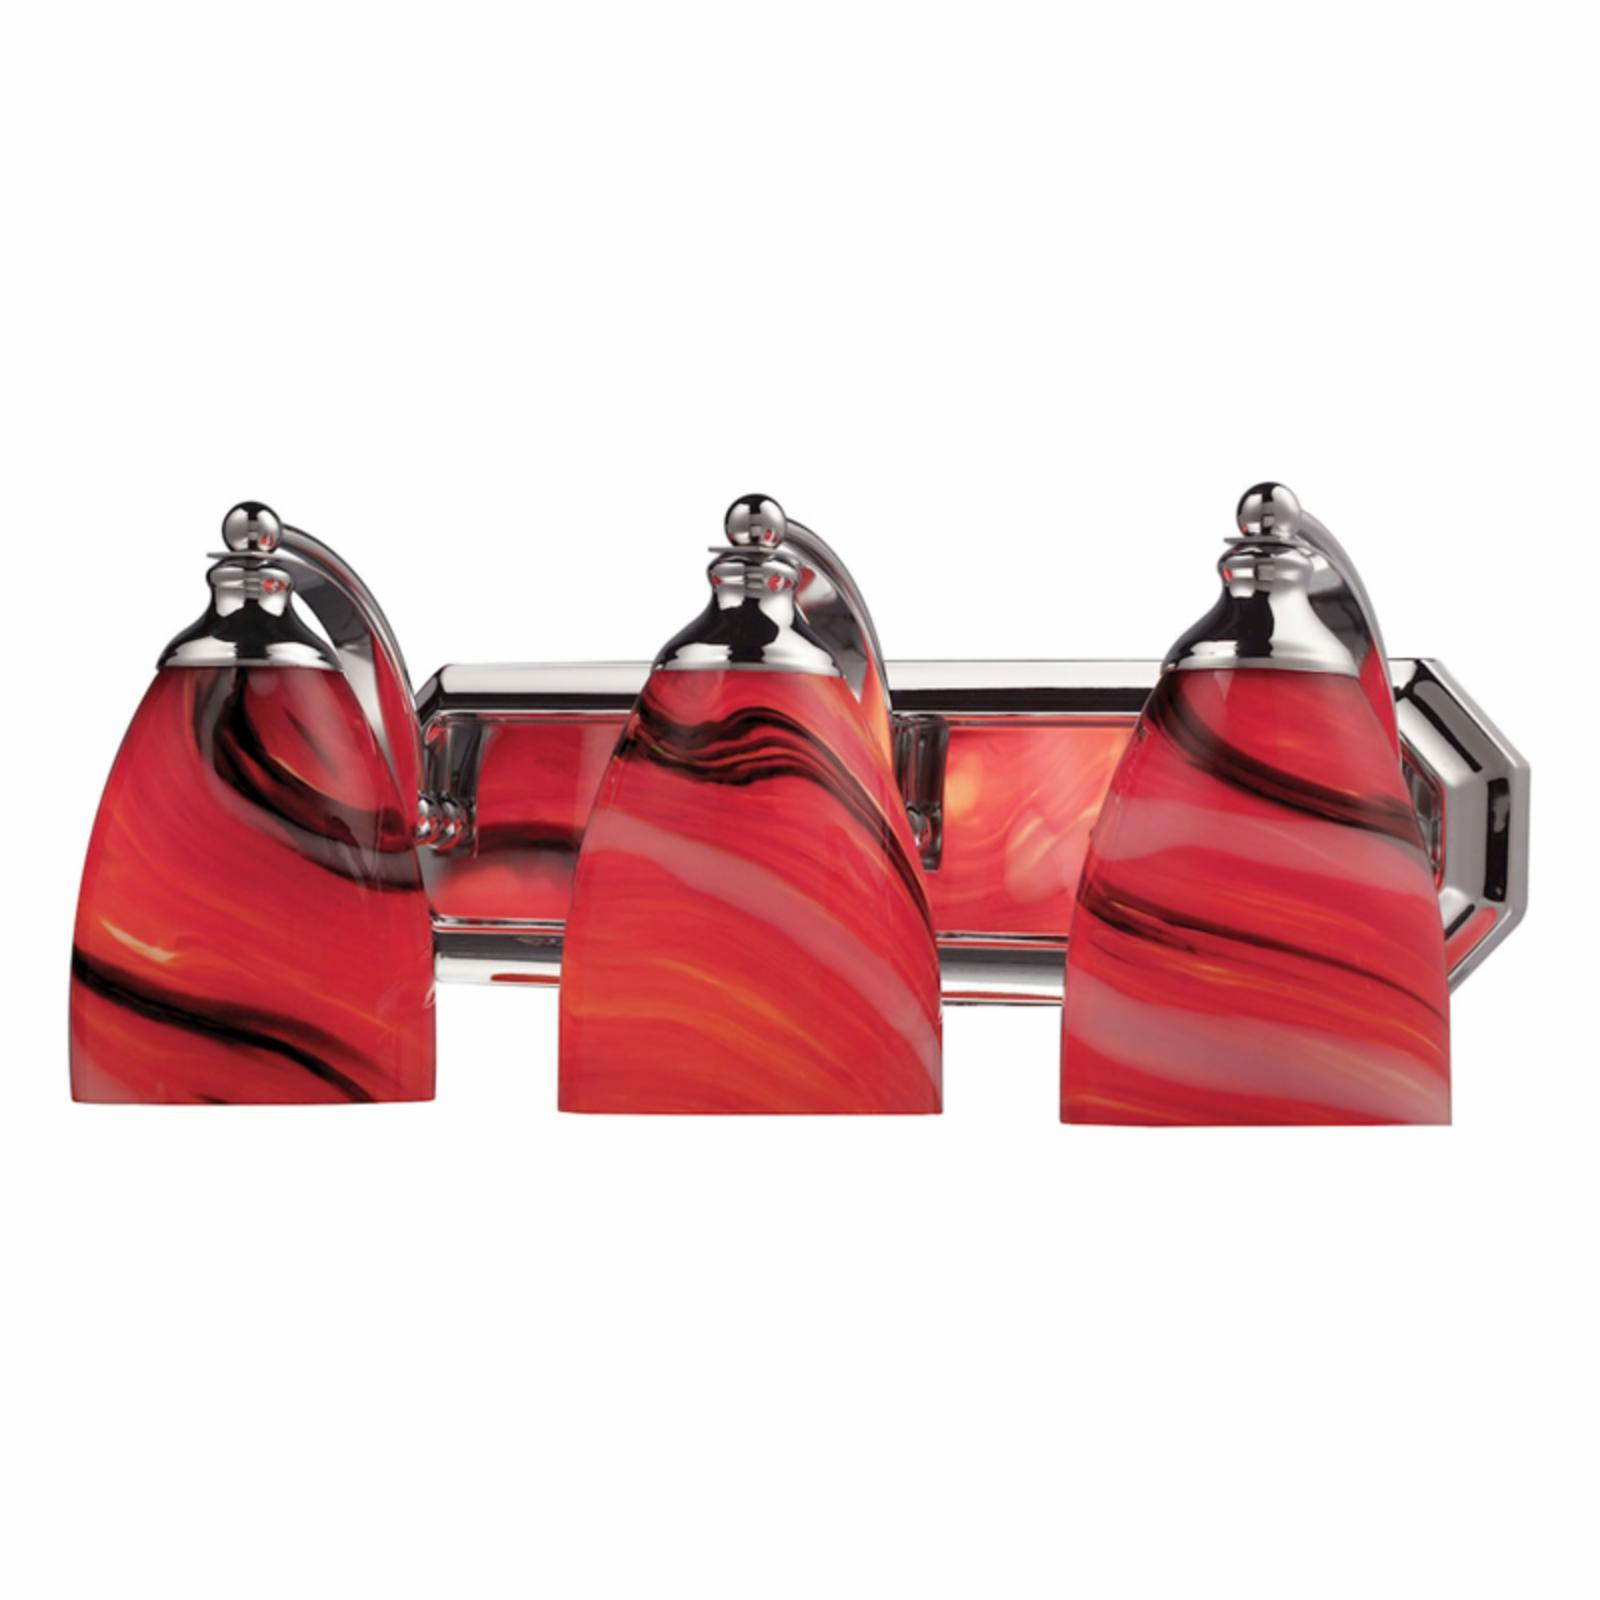 Elk Lighting Bath and Spa 570-3 Bathroom Vanity Light with Candy Glass Polished Chrome - 570-3C-CY-LED